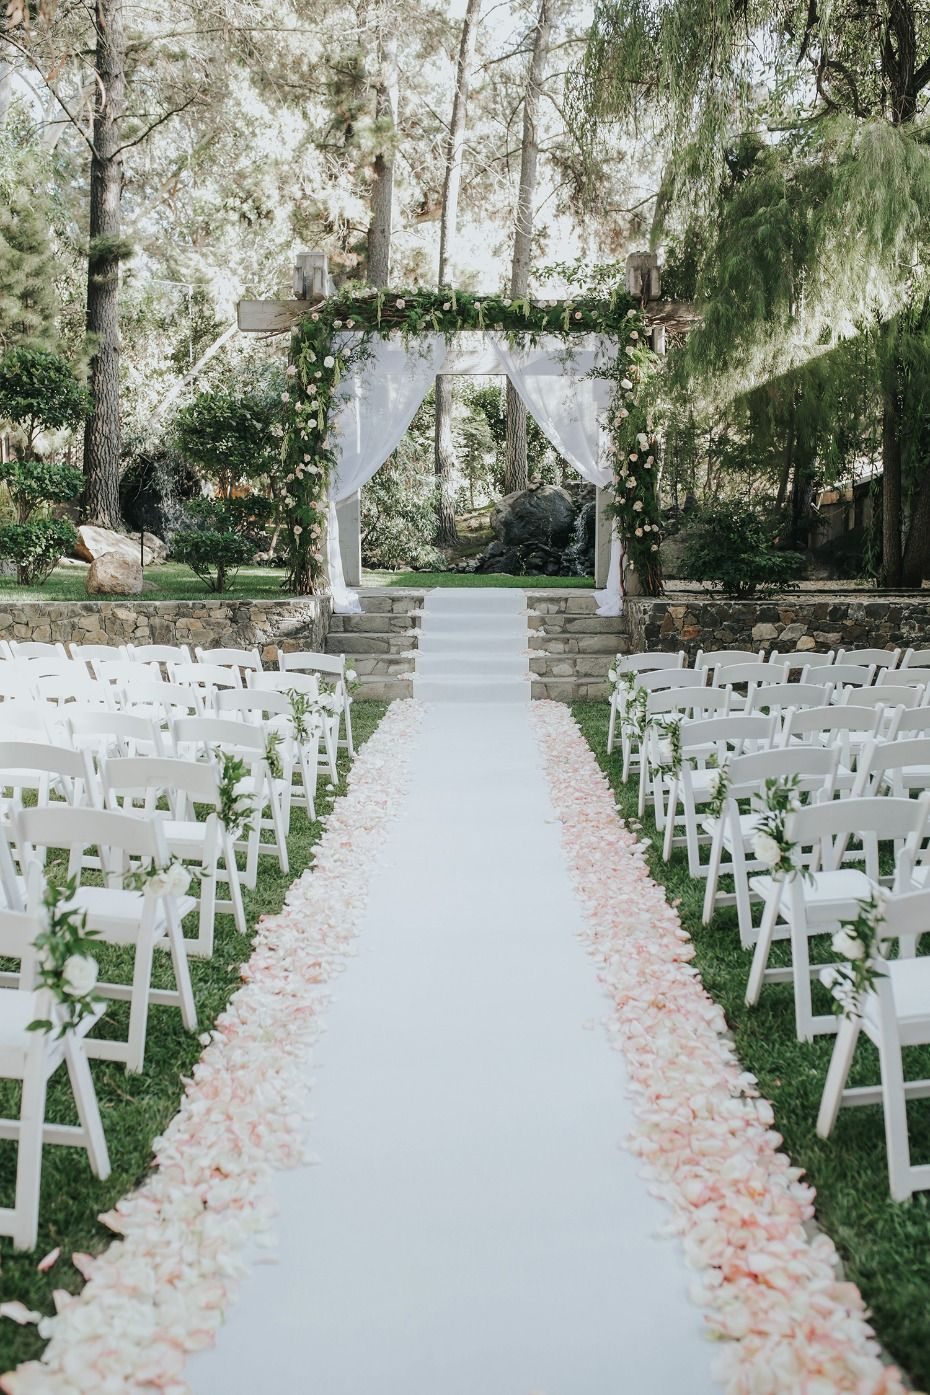 Rustic Never Looked So Glamorous At This Calamigos Ranch Wedding Garden Wedding Ceremony Arch Calamigos Ranch Wedding Outdoor Wedding Decorations